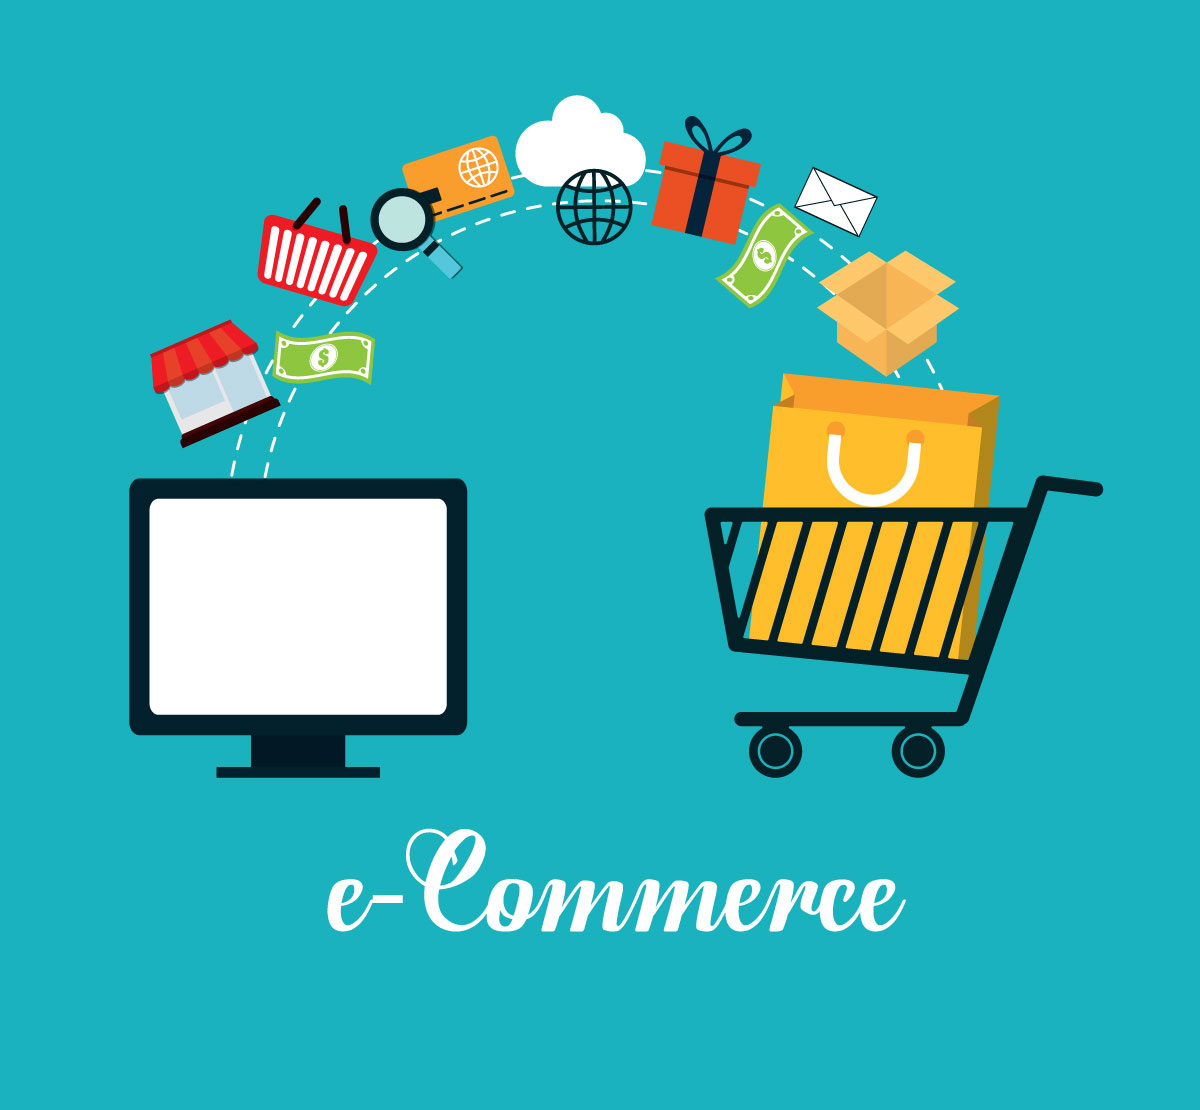 newecommerce